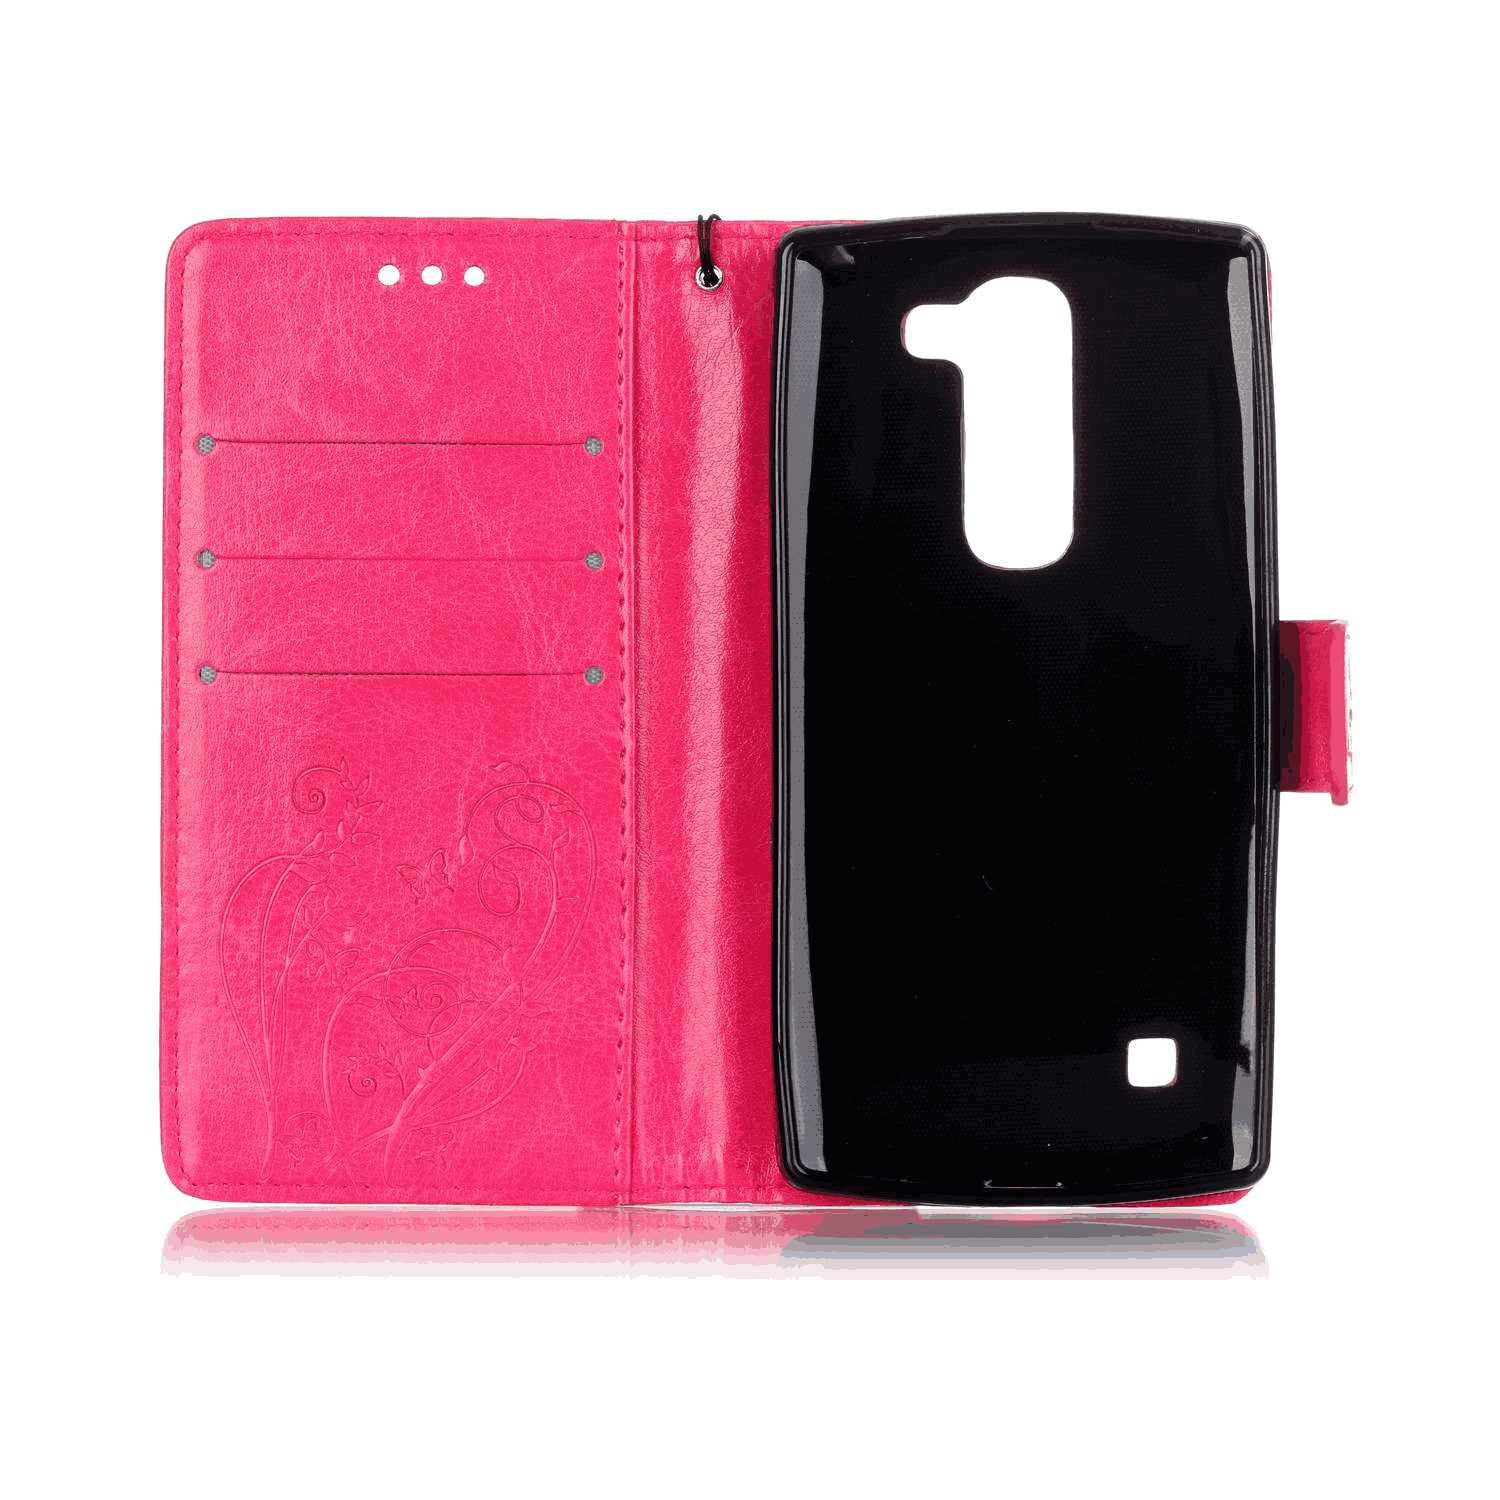 Business Gifts Wallet Cover Compatible with iPhone 8 Leather Flip Case for iPhone 8 with Universal Underwater Waterproof Case